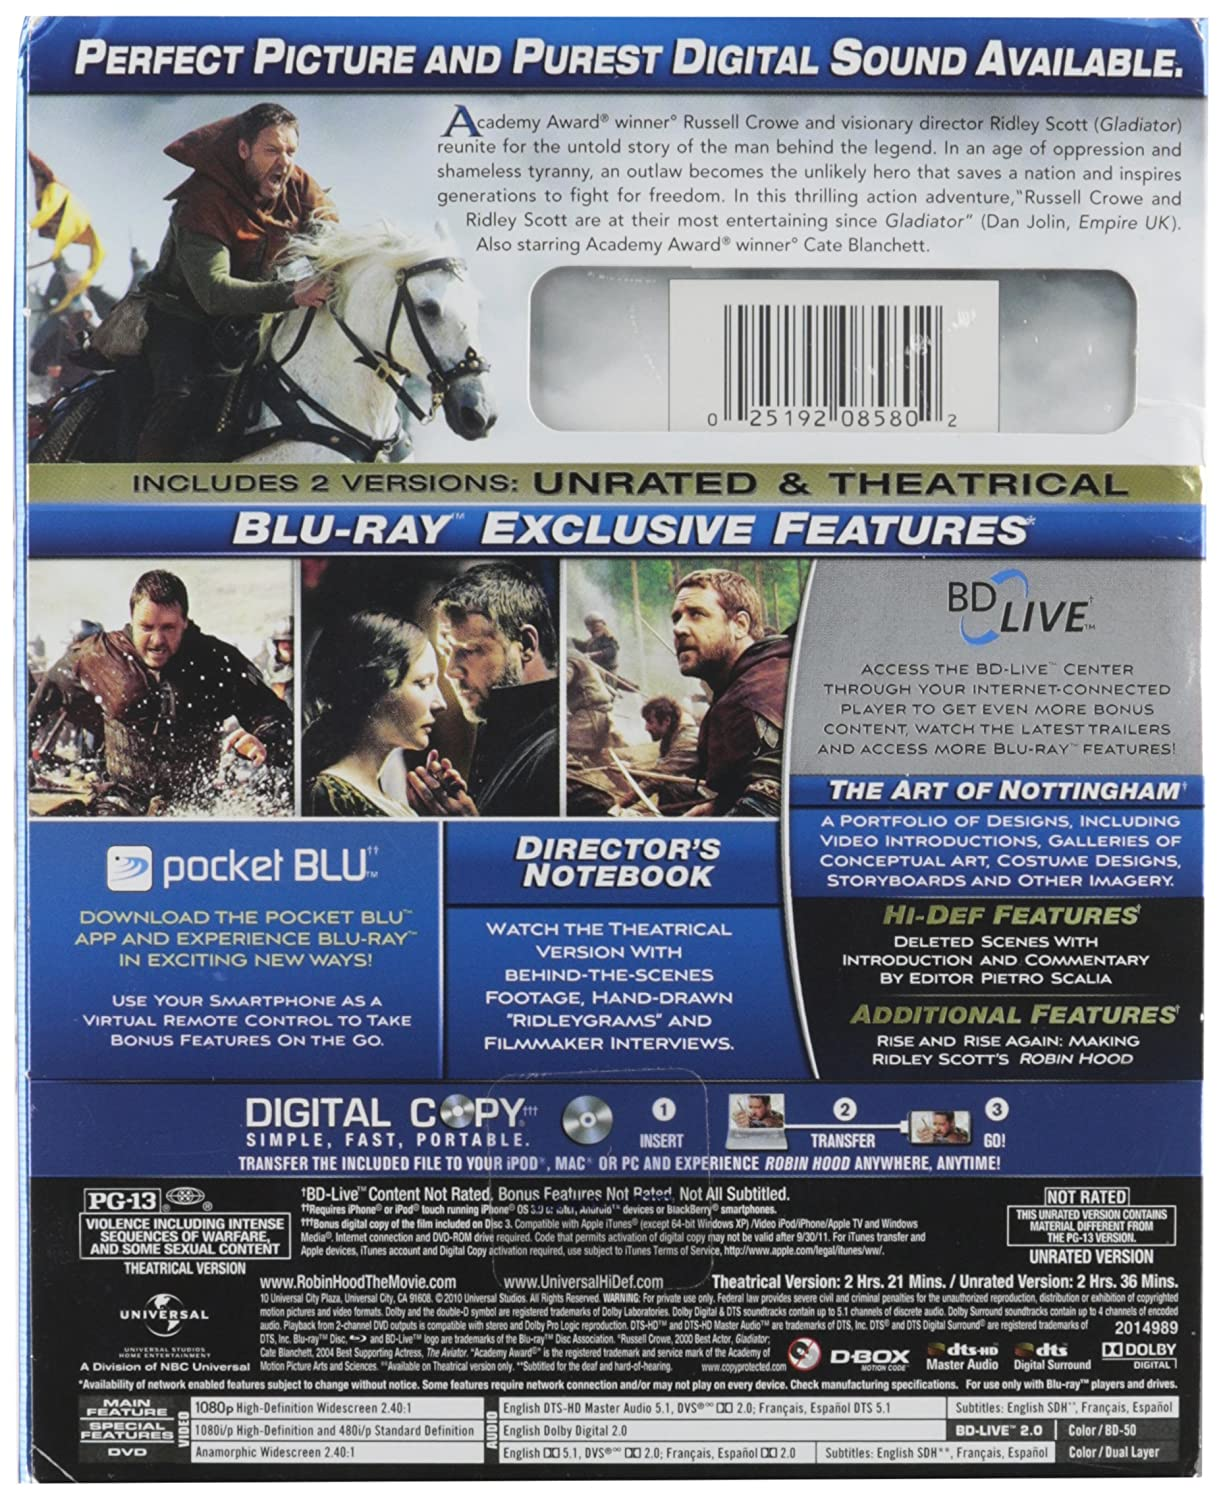 assassins creed movie torrent download yify